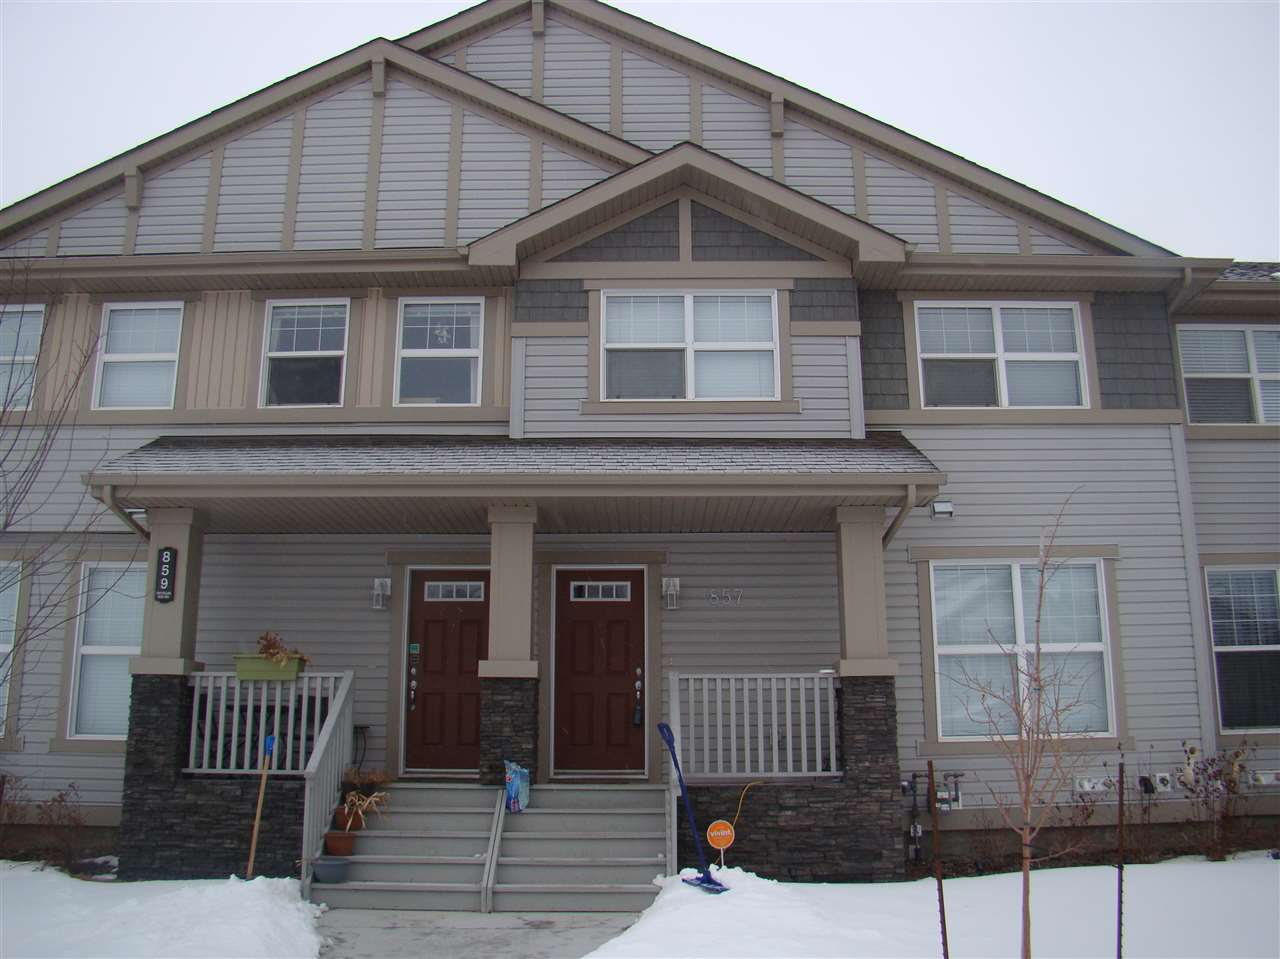 This gorgeous 2-storey townhouse has no CONDO FEES!! As soon as you enter you are greeted by a wide open floor plan with a huge island kitchen with loads of counter space and stainless steel appliances. There is also a dining room which can accommodate a good size table, a 2pc bath, a bright living room and hardwood thru out the main floor. Upstairs you will find the huge master bedroom with a walk in closet and a beautiful 3pc bath, another 4pc bath and another 2 generous size bedrooms. The back yard is landscaped and features a double garage. The location is fantastic as it is across the street from a lake, walking trails and backing onto a green space. Just move in and Enjoy.